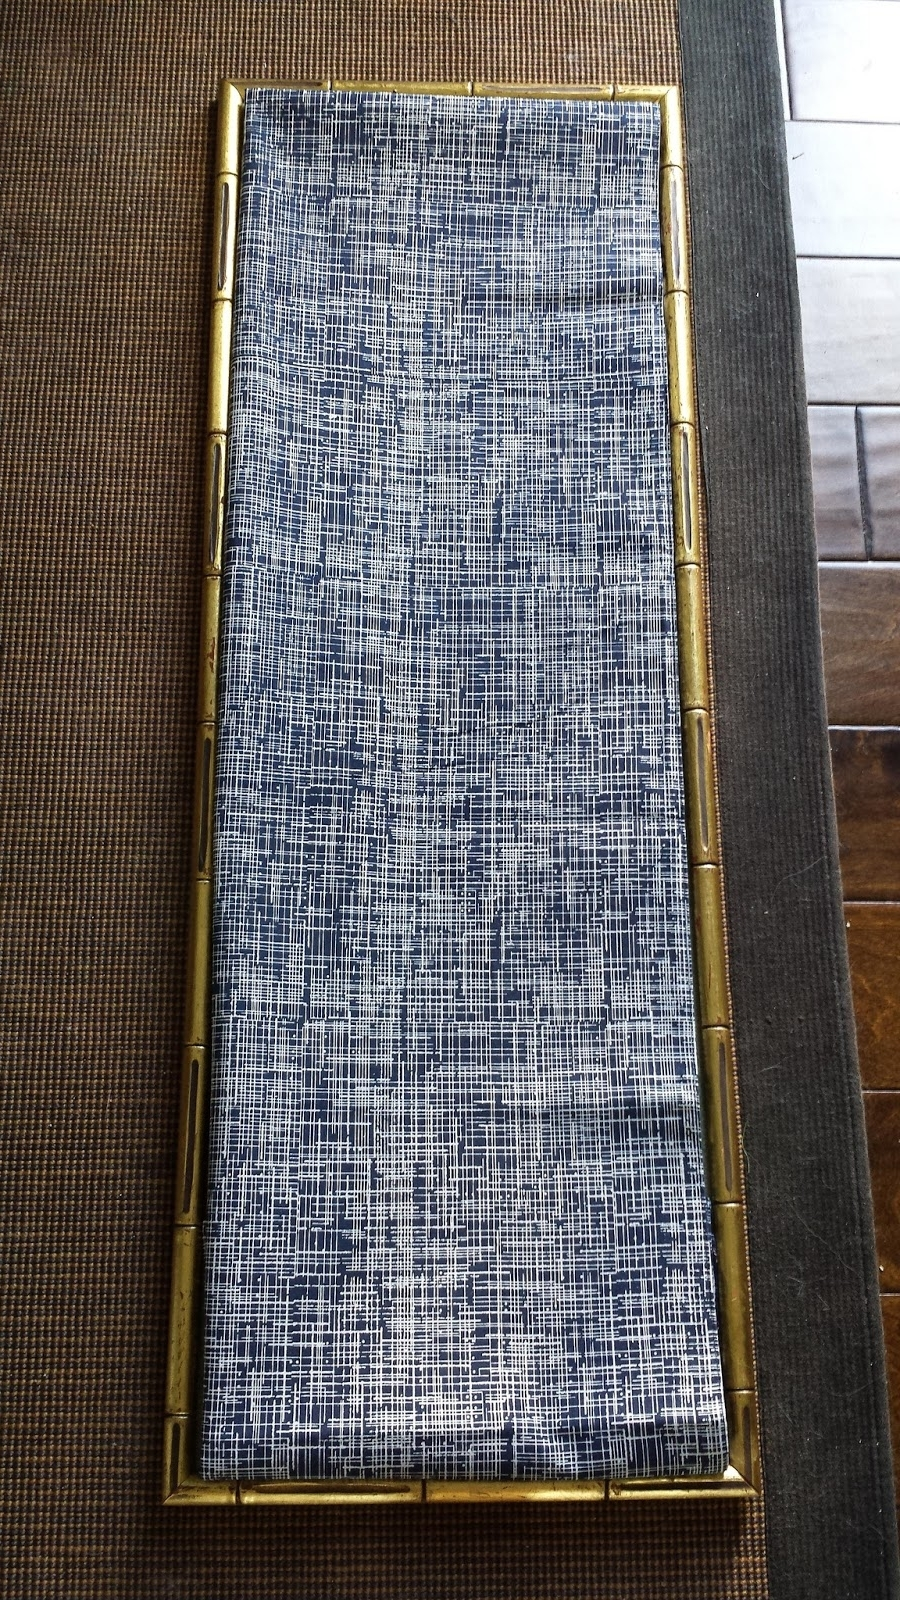 Focal Point Styling: Diy Indigo Wall Art With Framed Fabric With Regard To Best And Newest Diy Fabric Panel Wall Art (View 5 of 15)